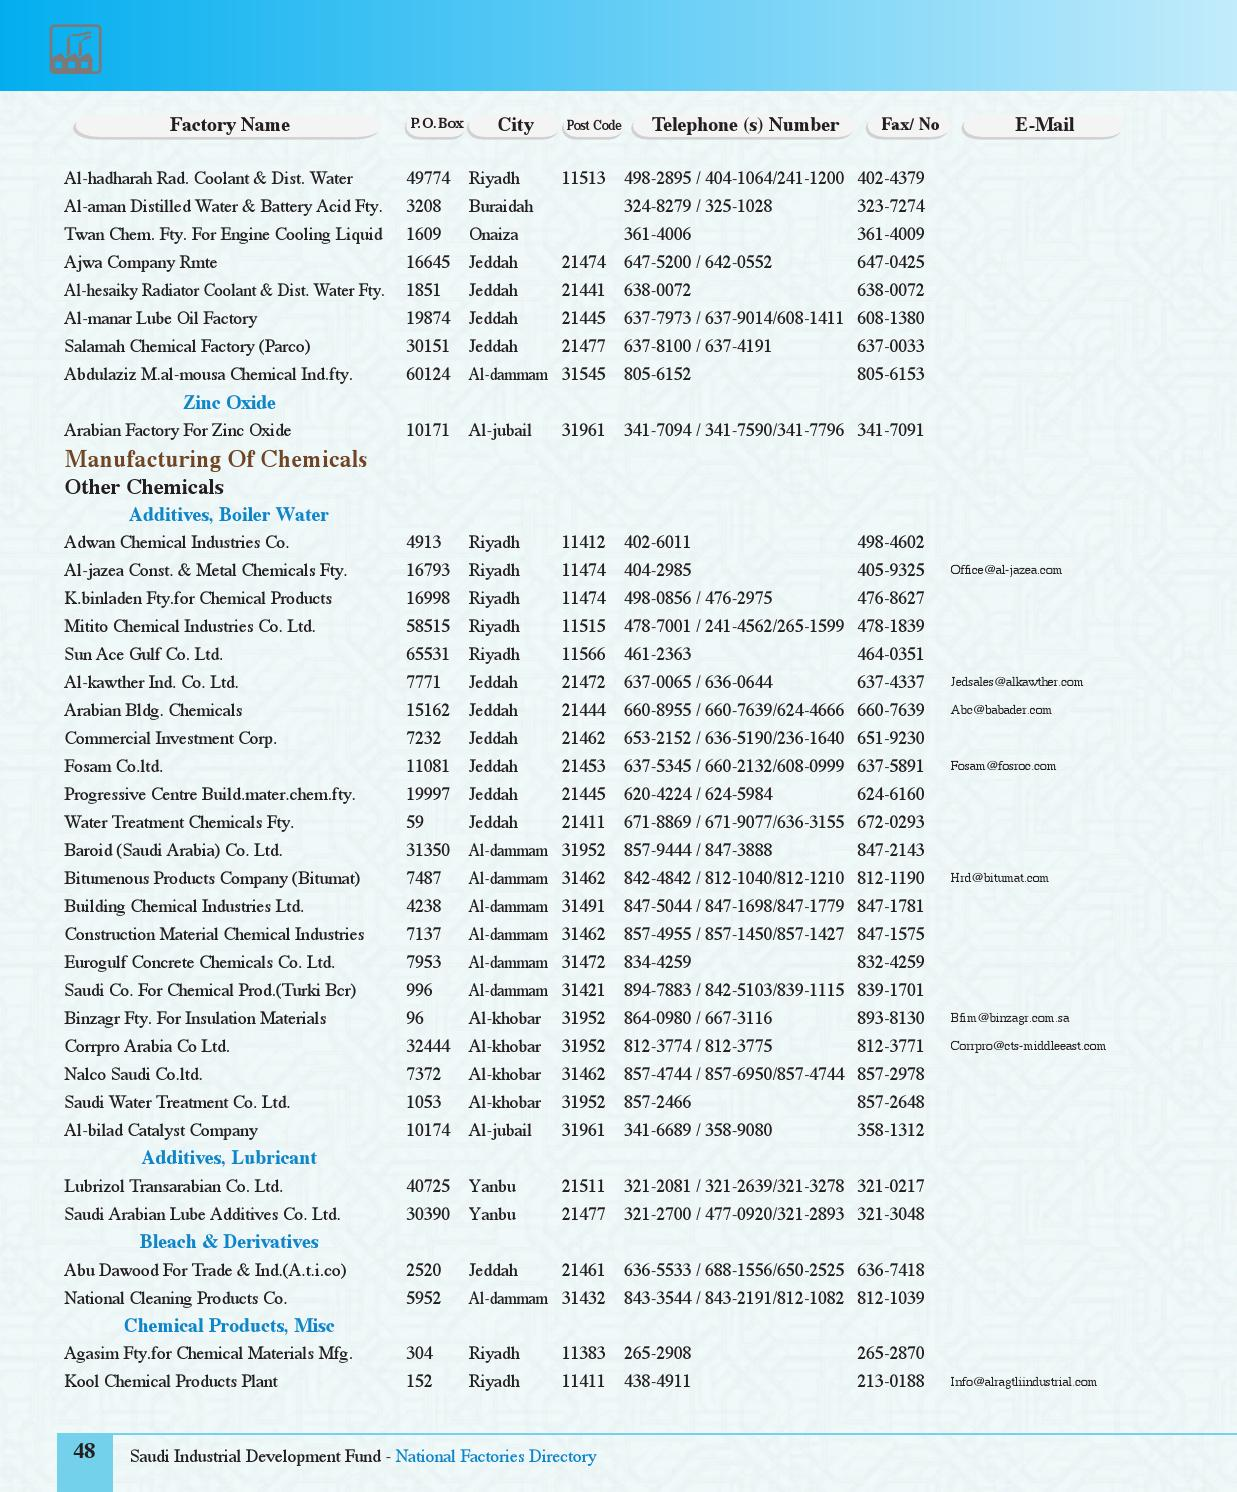 Saudi arabia national factories directory 2012 by sunny zhang - issuu